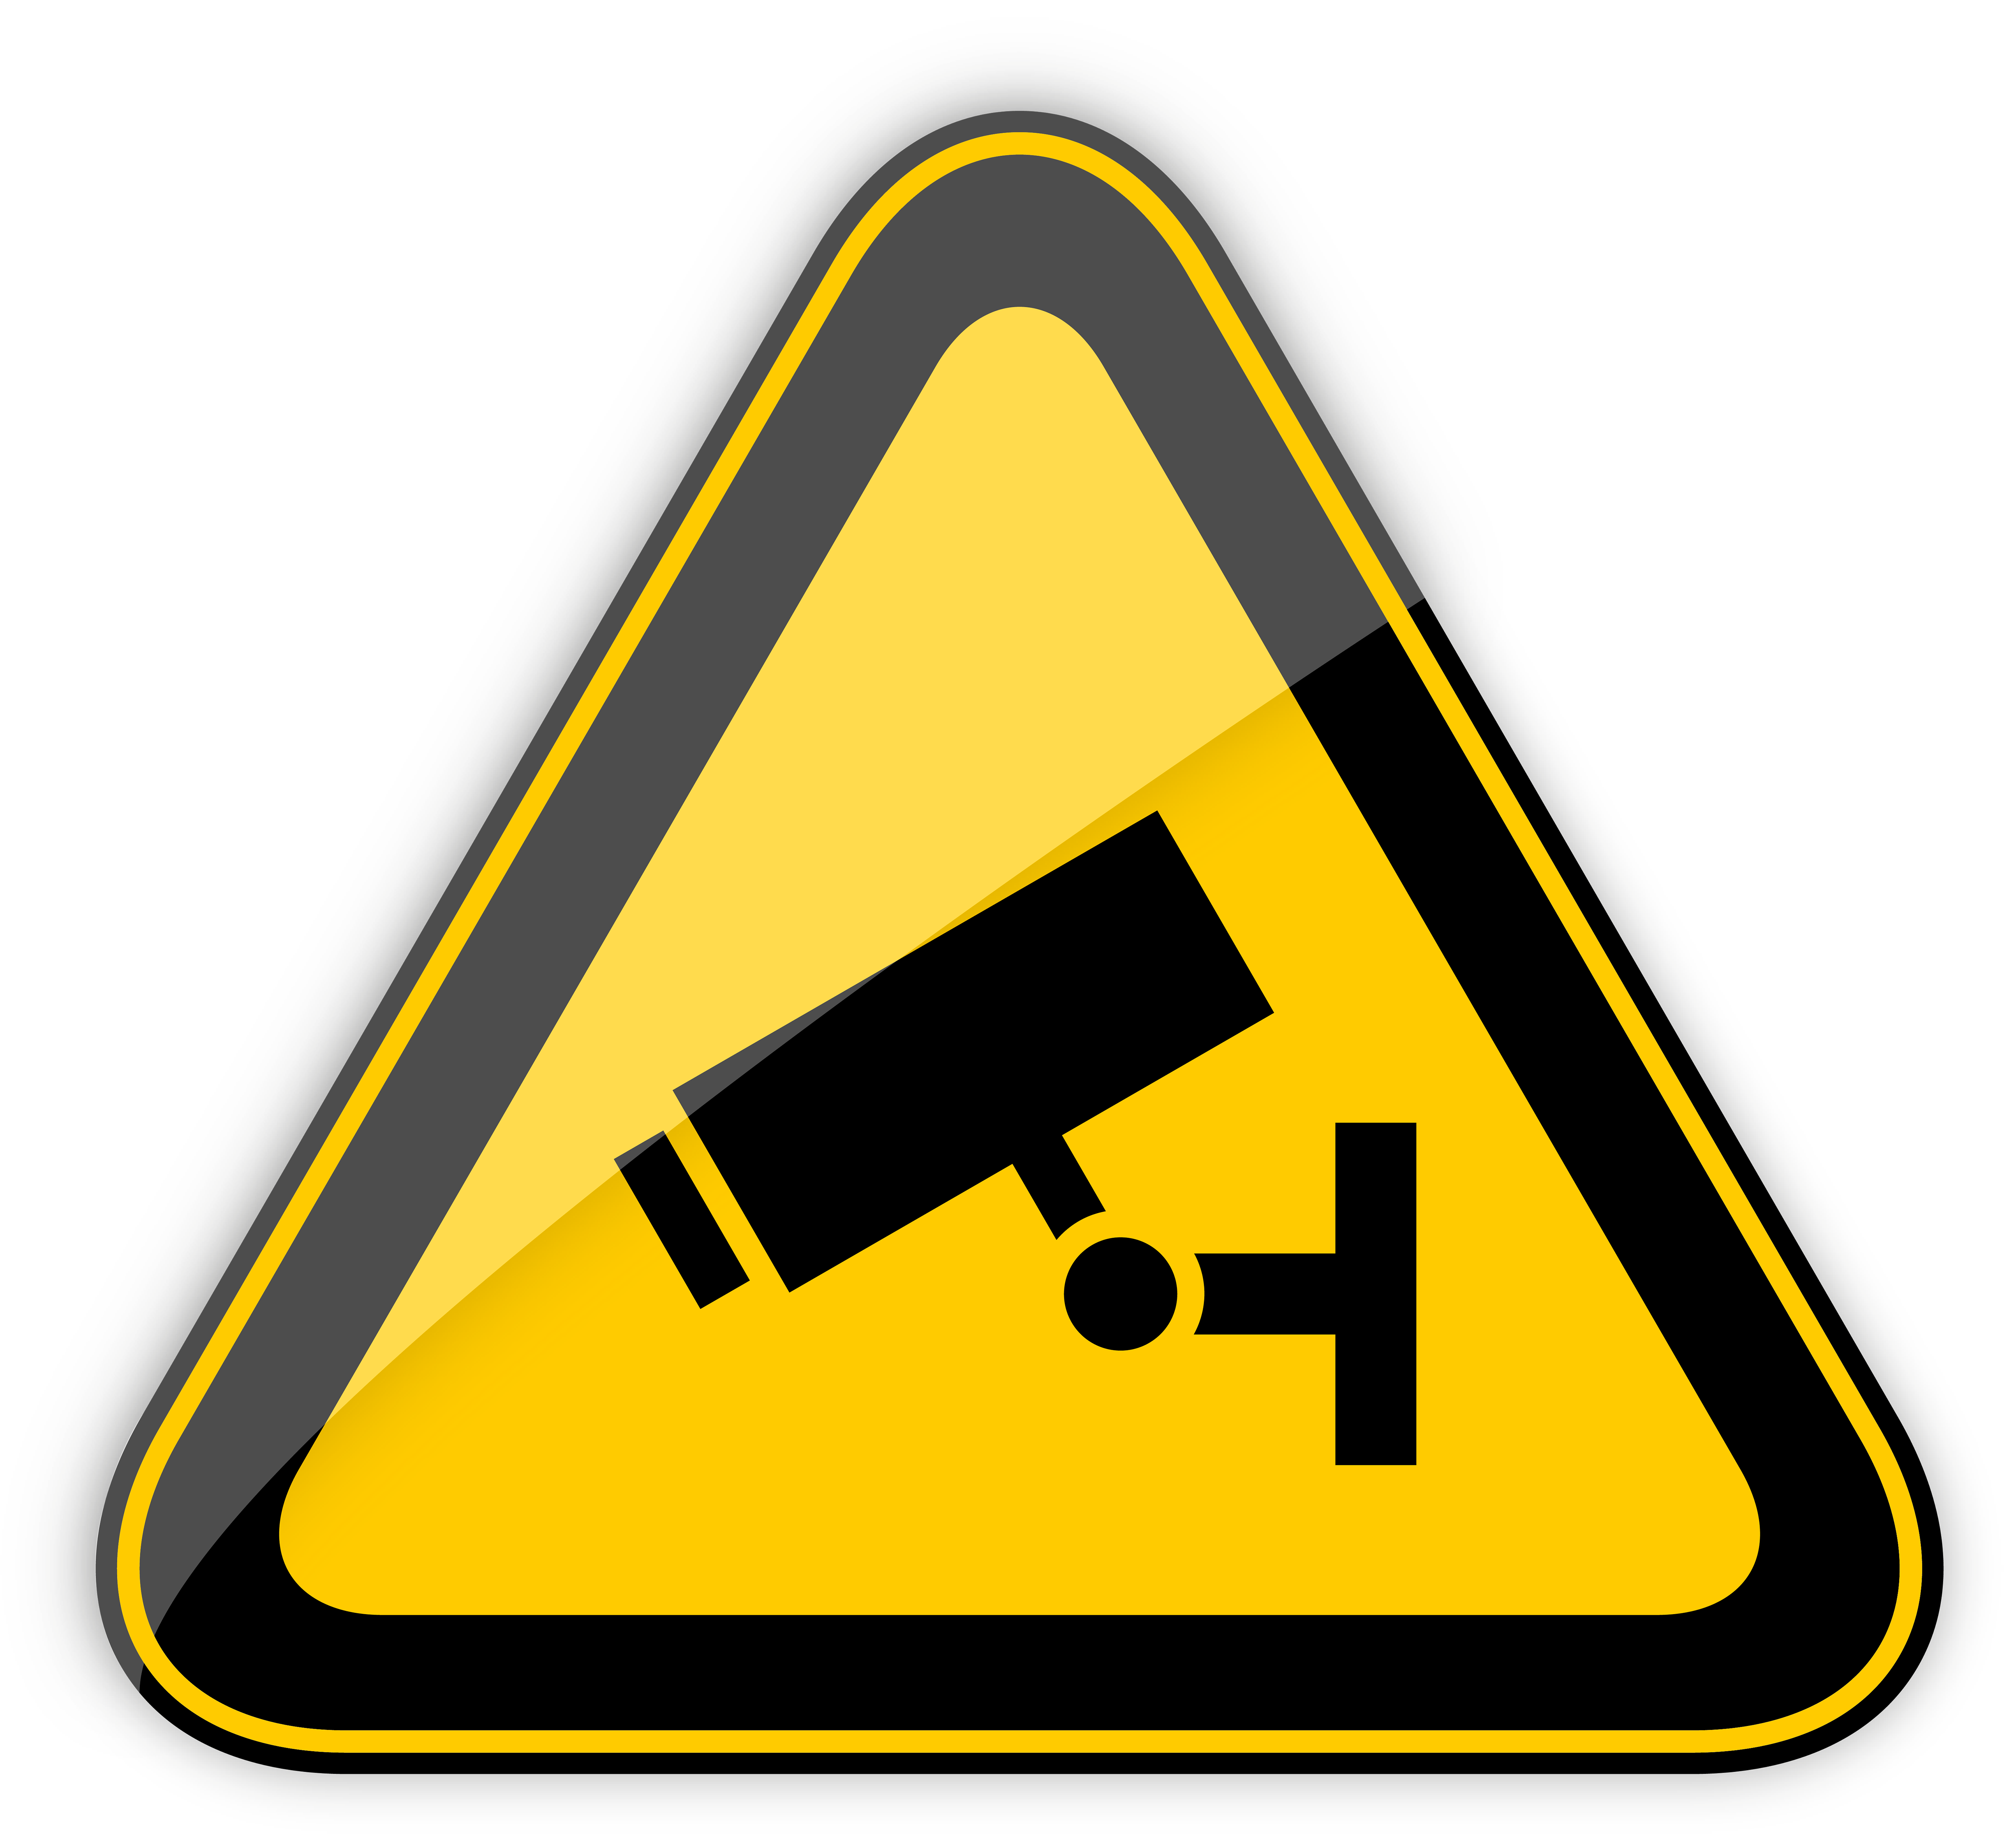 CCTV in Operation Warning Sign PNG Clipart.